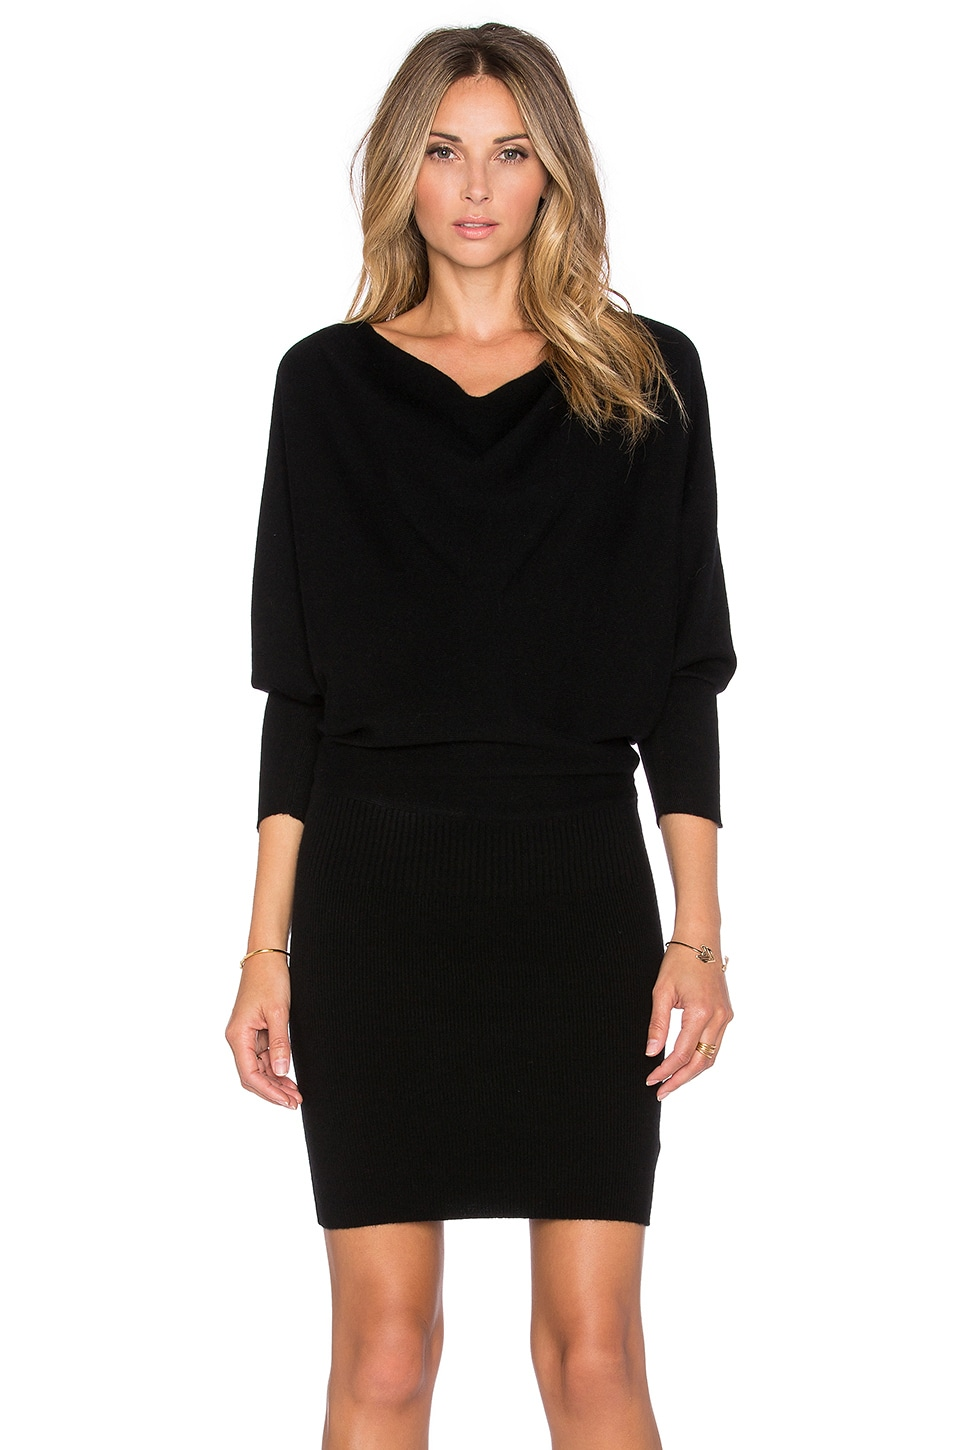 Athel B Sweater Dress by Joie